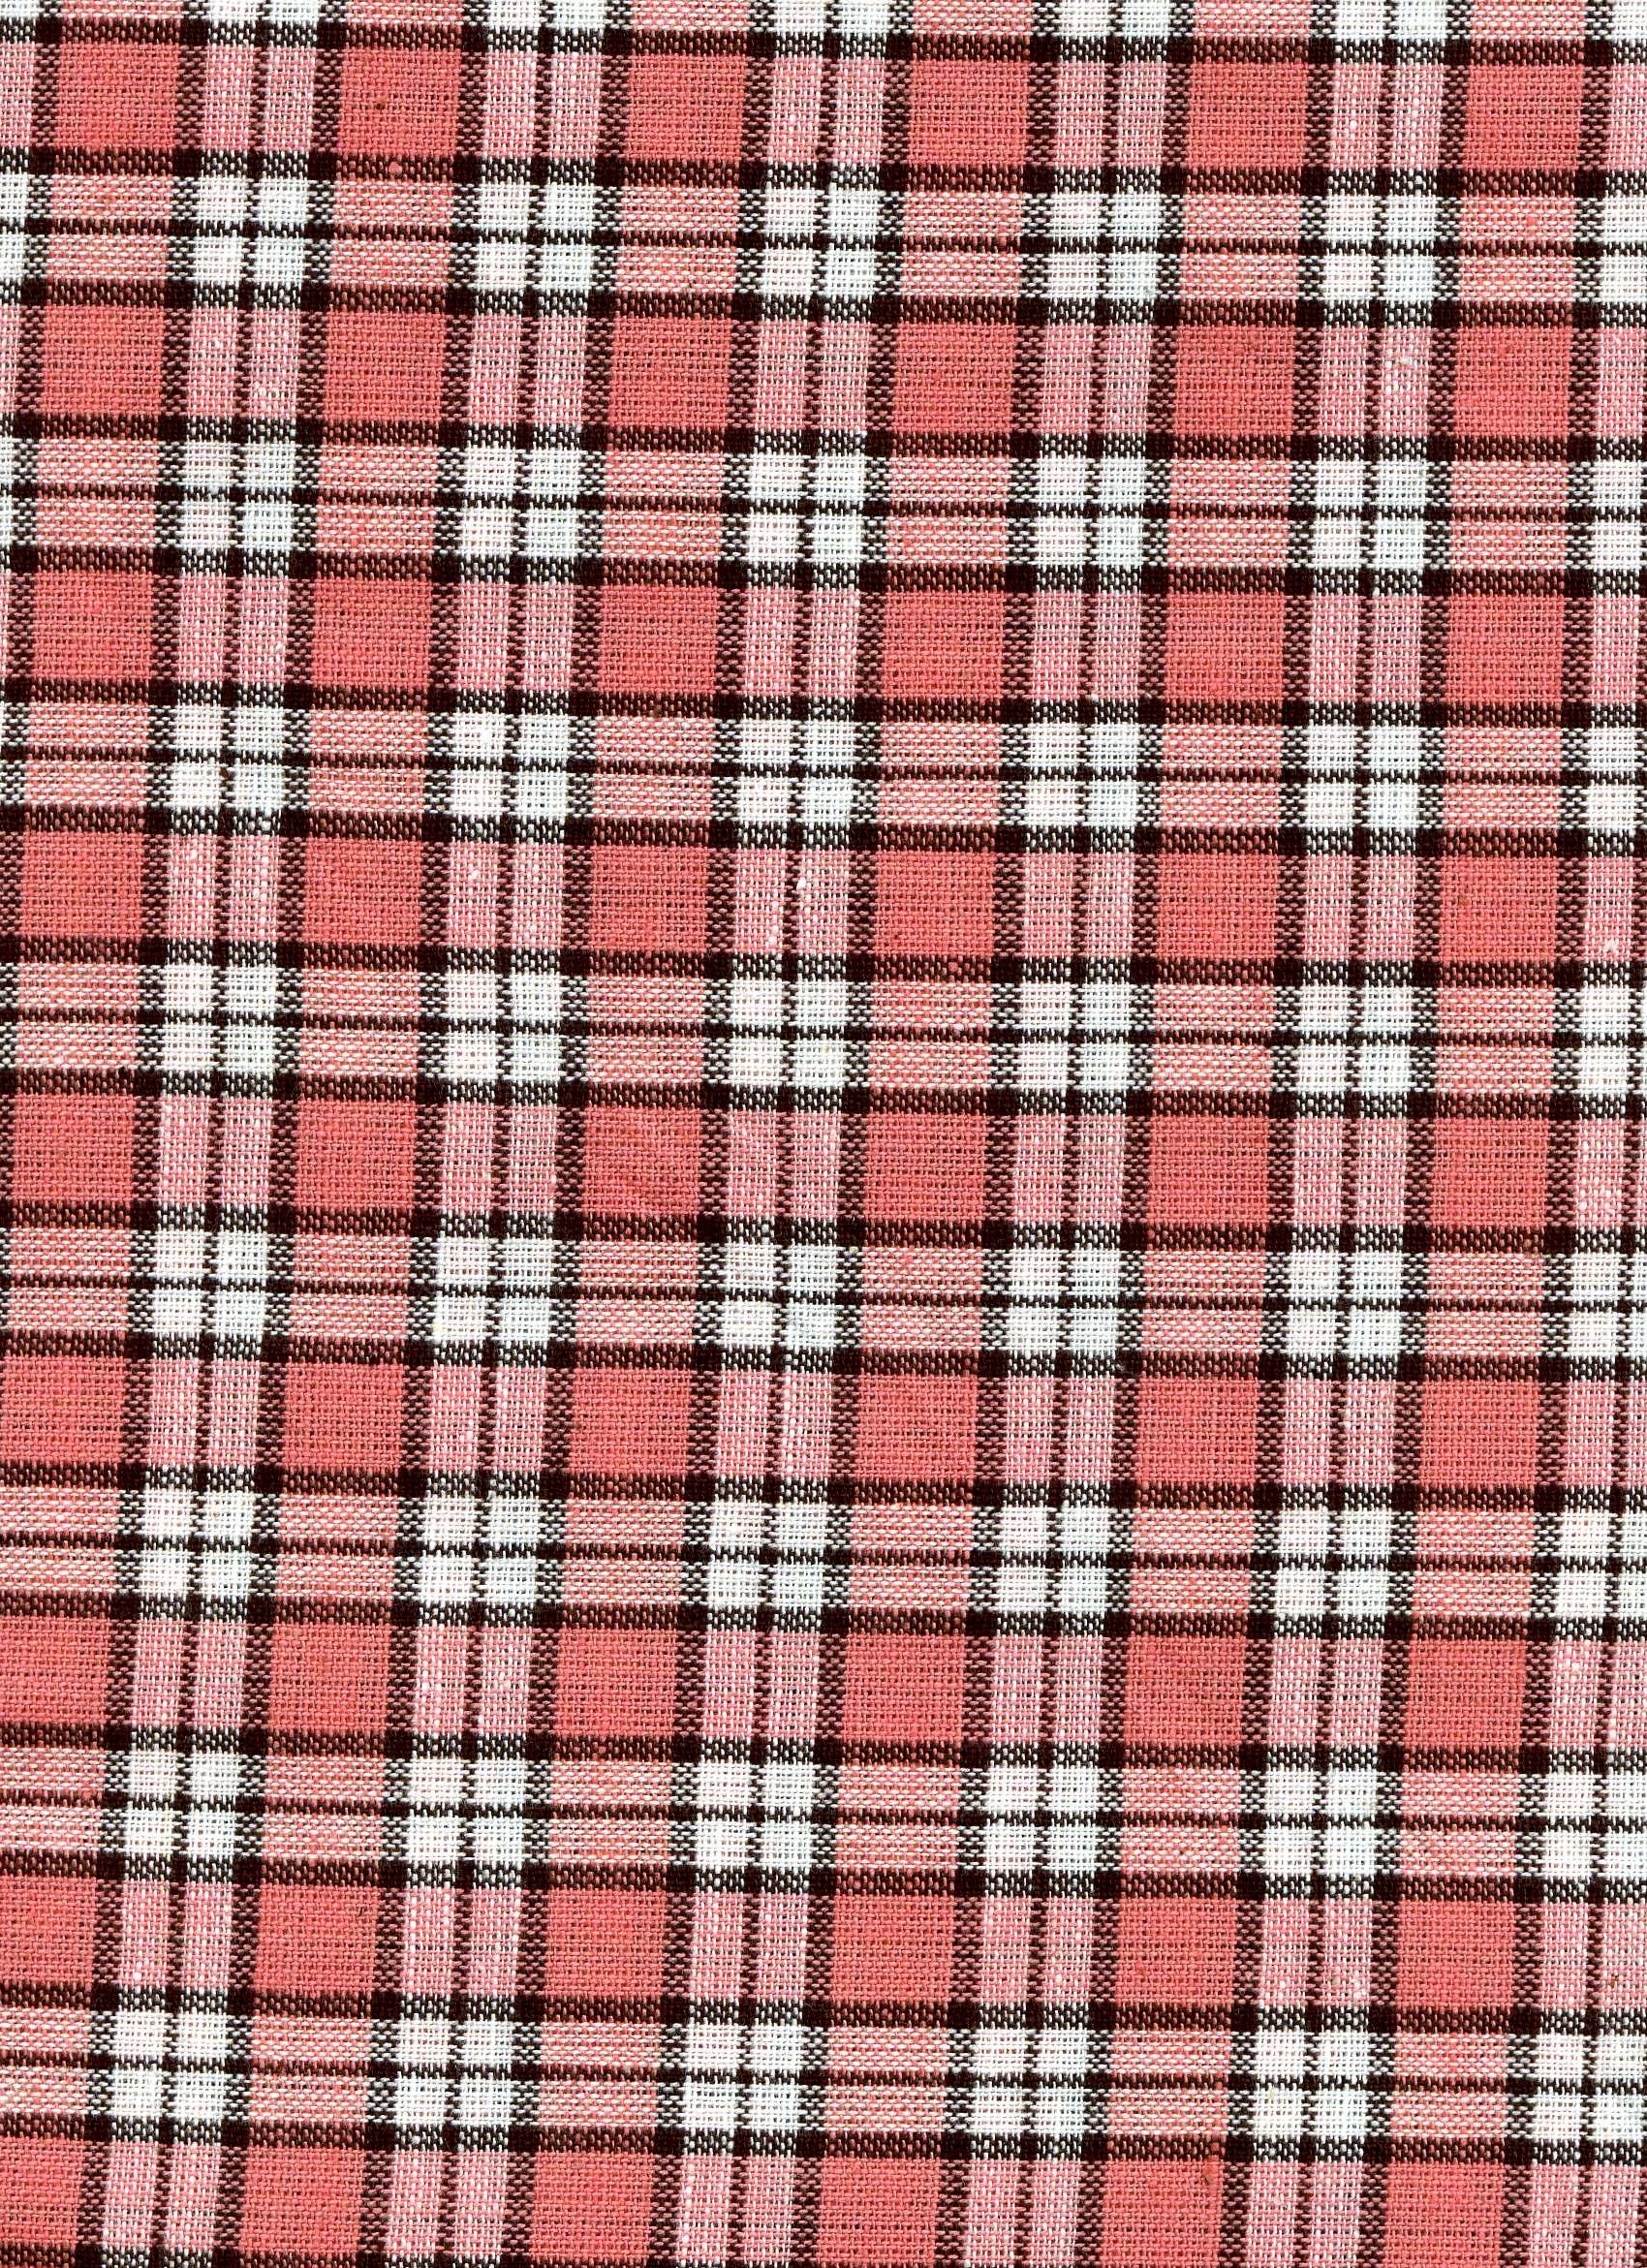 Rose and White Plaid